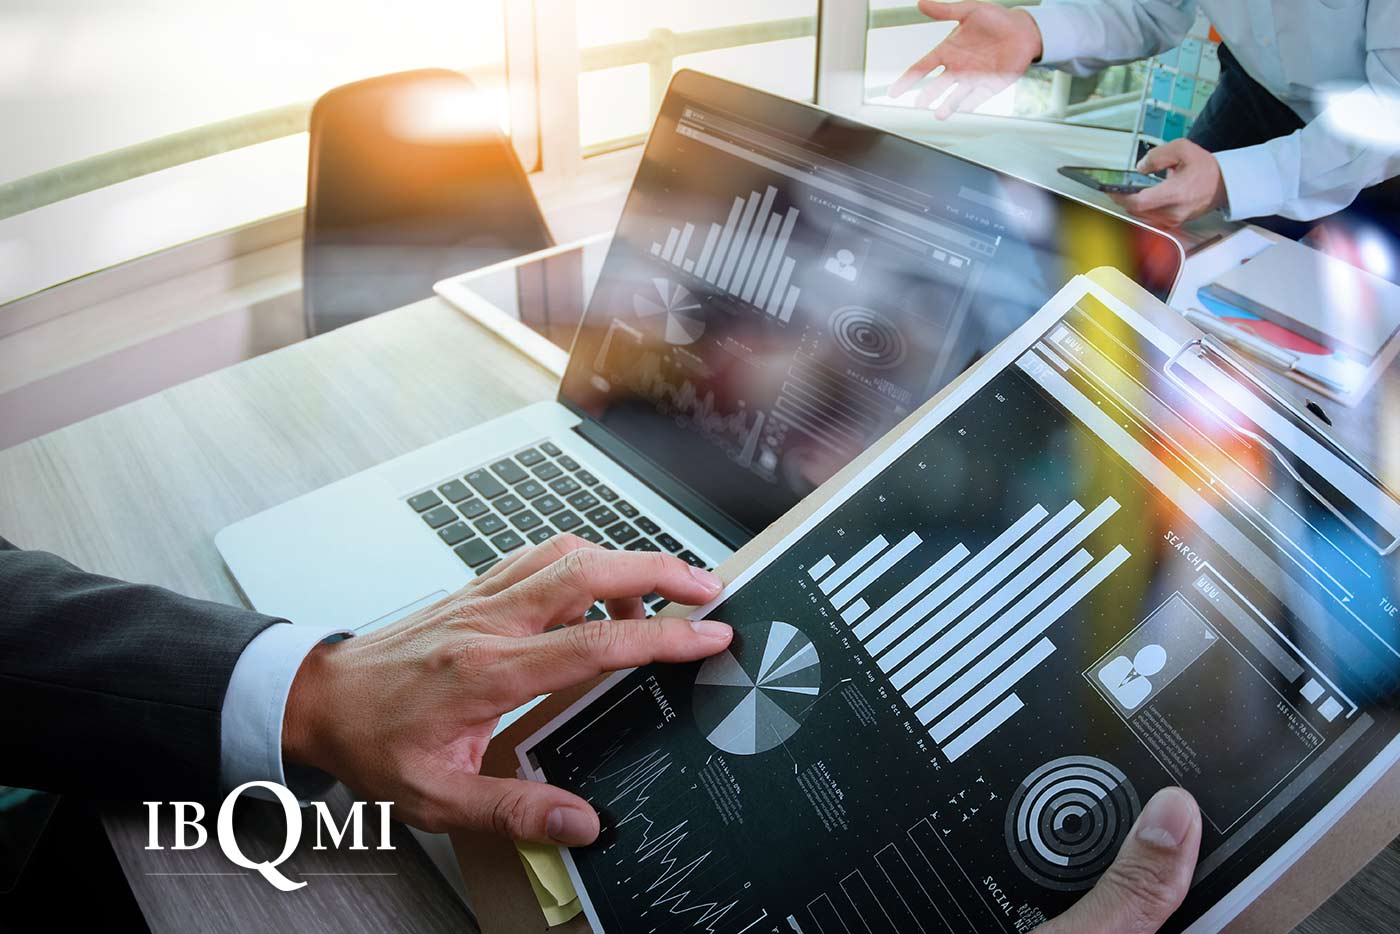 Top 5 tqm tools to improve your quality management